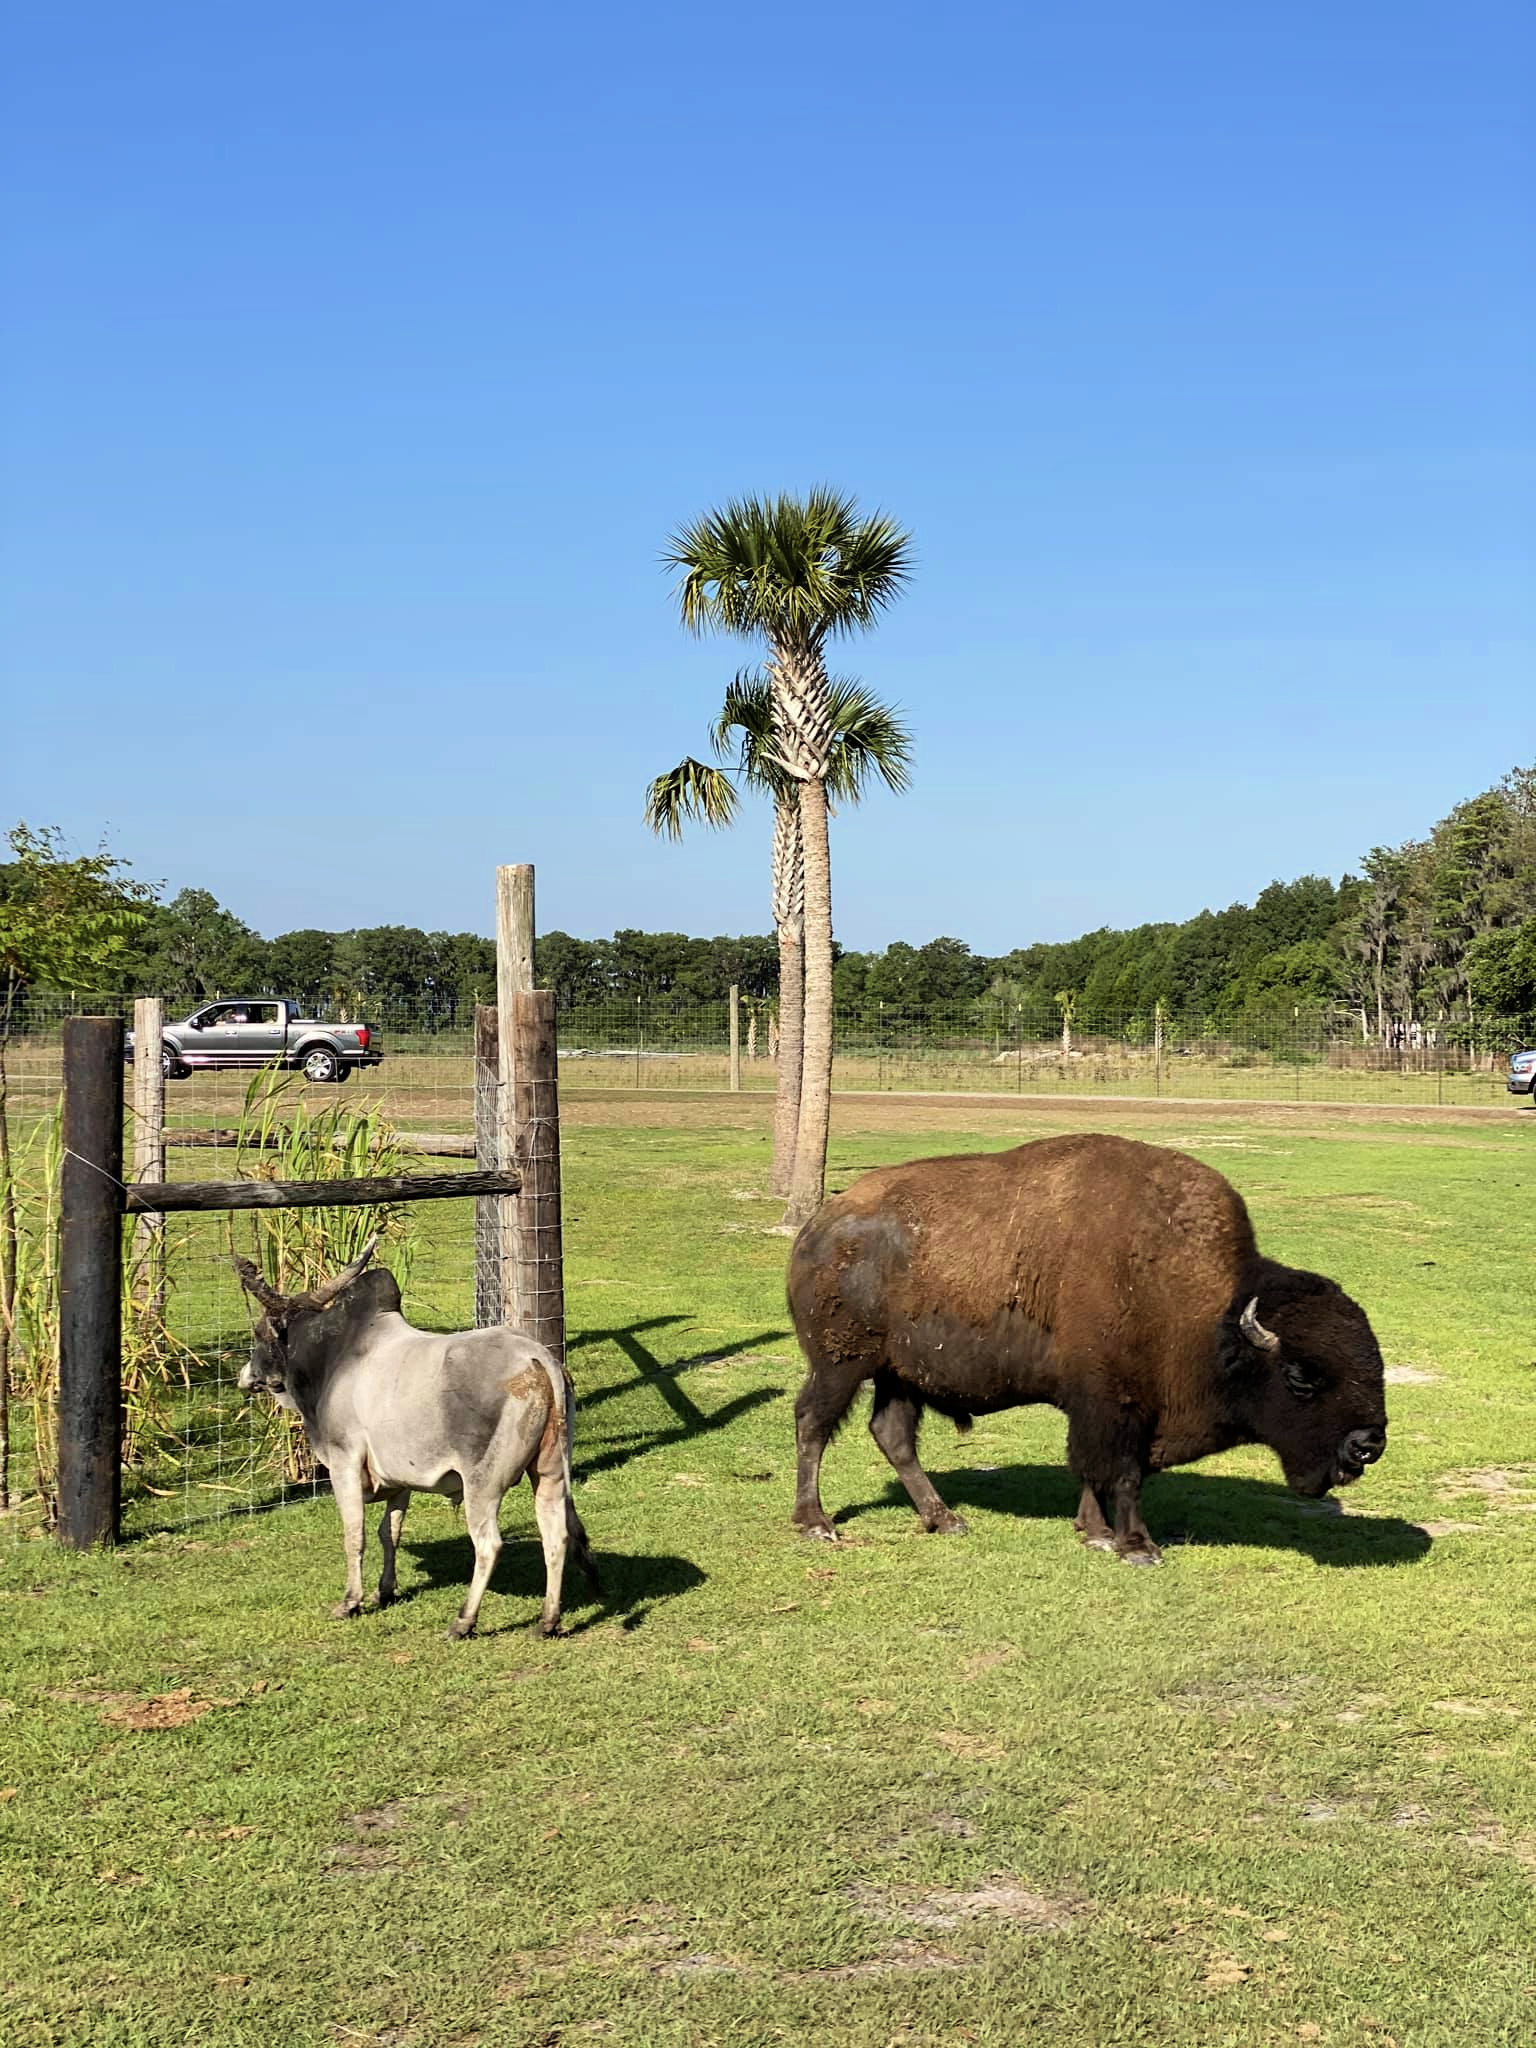 Bison at Wild Florida Drive-Thru Safari Park